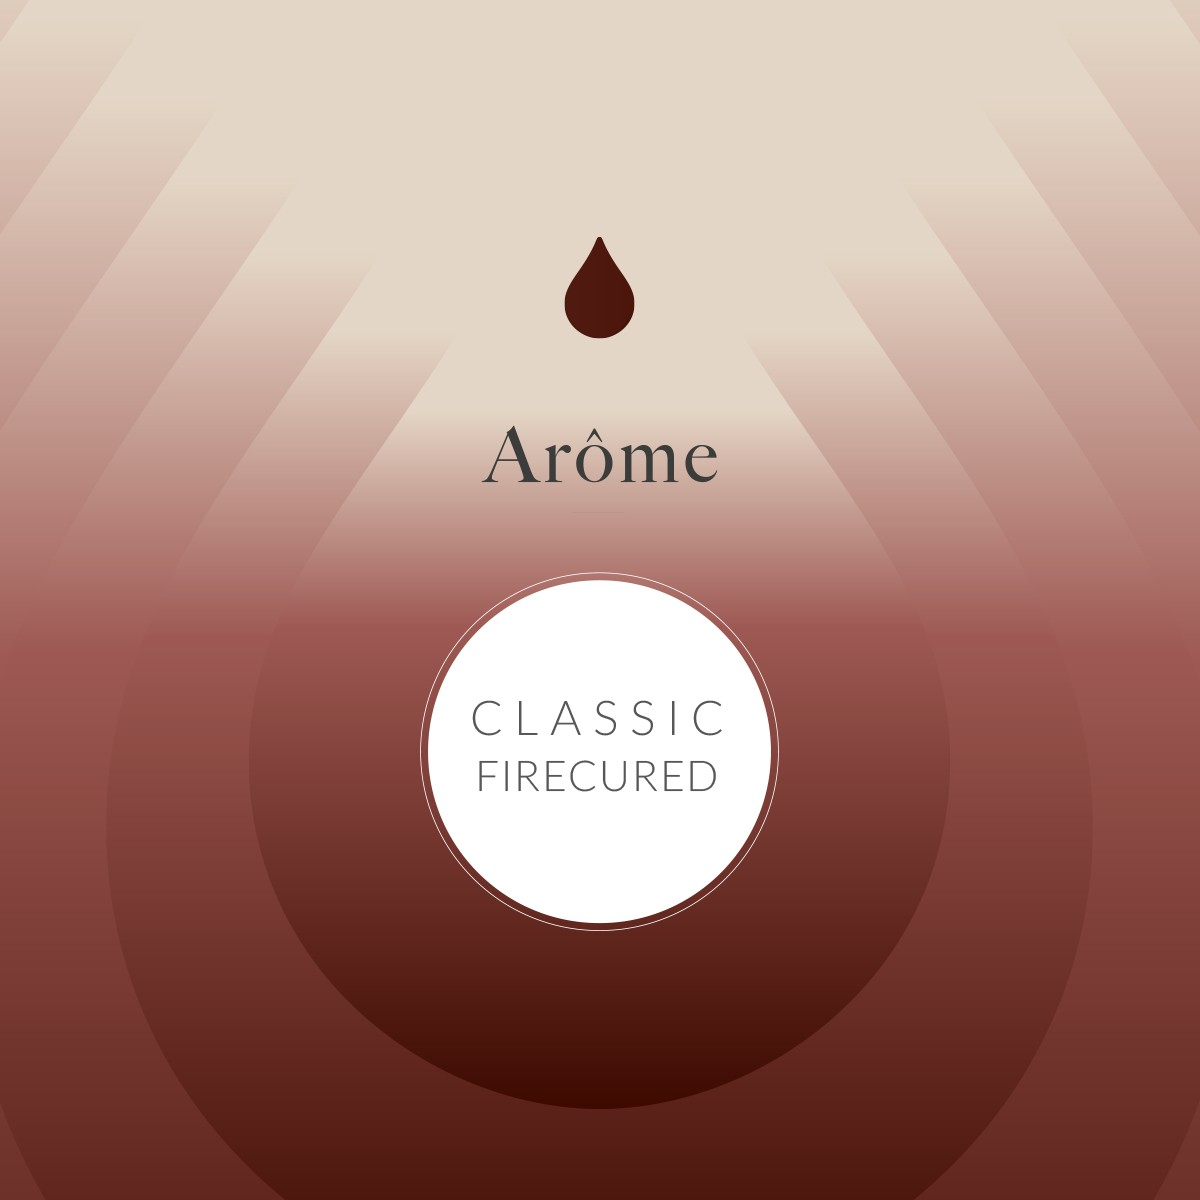 Arôme Classic Firecured